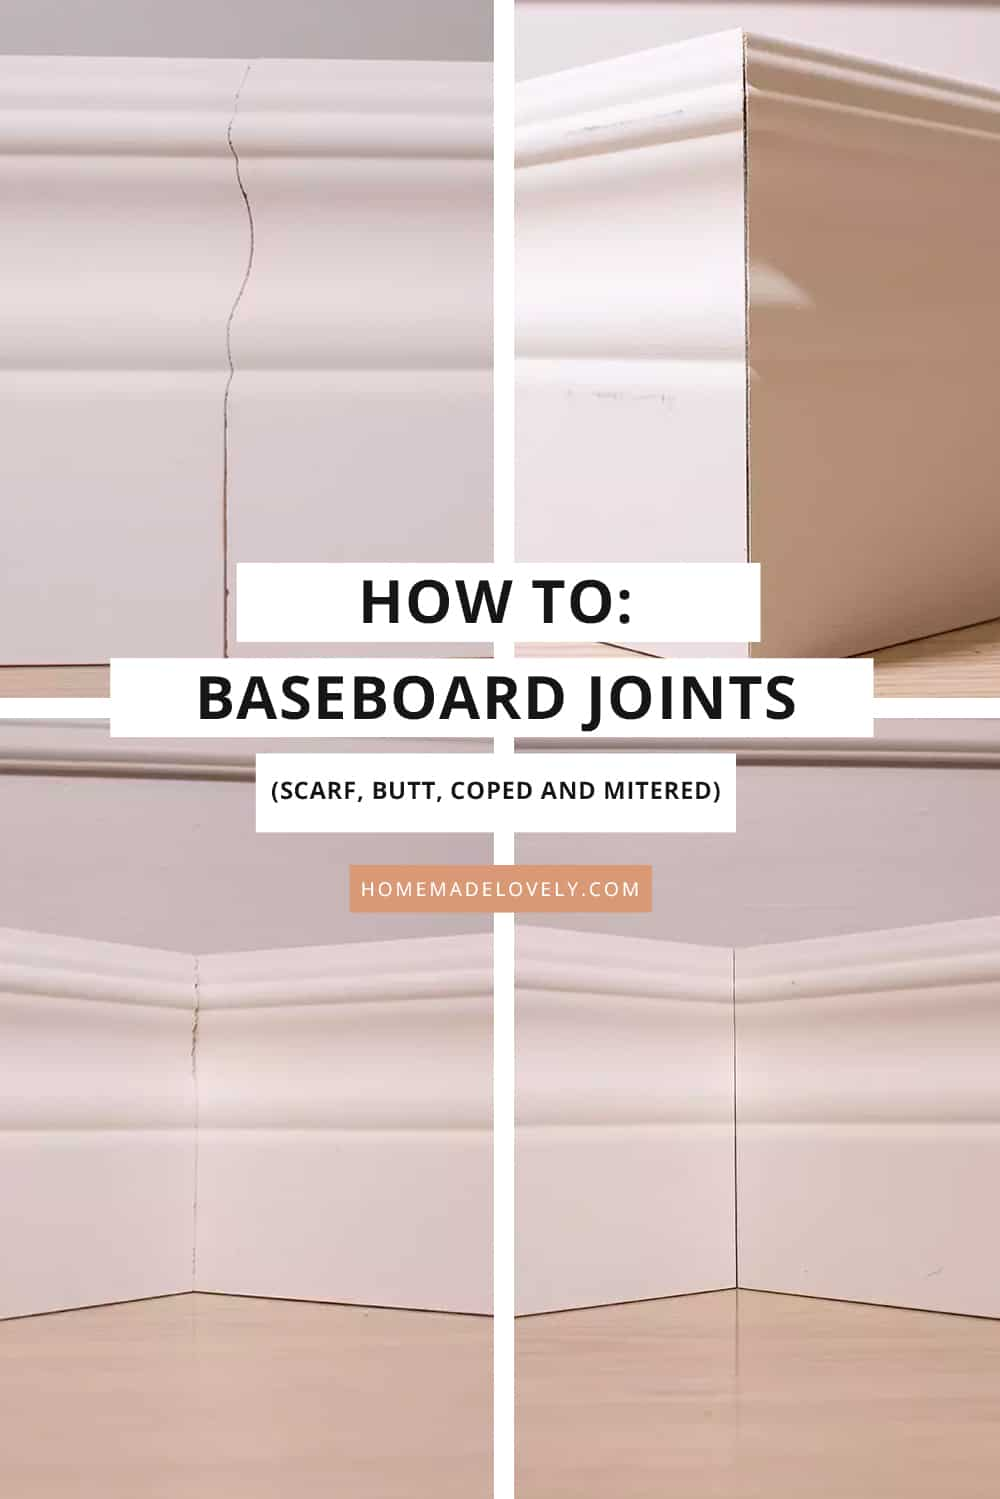 four types of baseboard cuts shown with text overlay